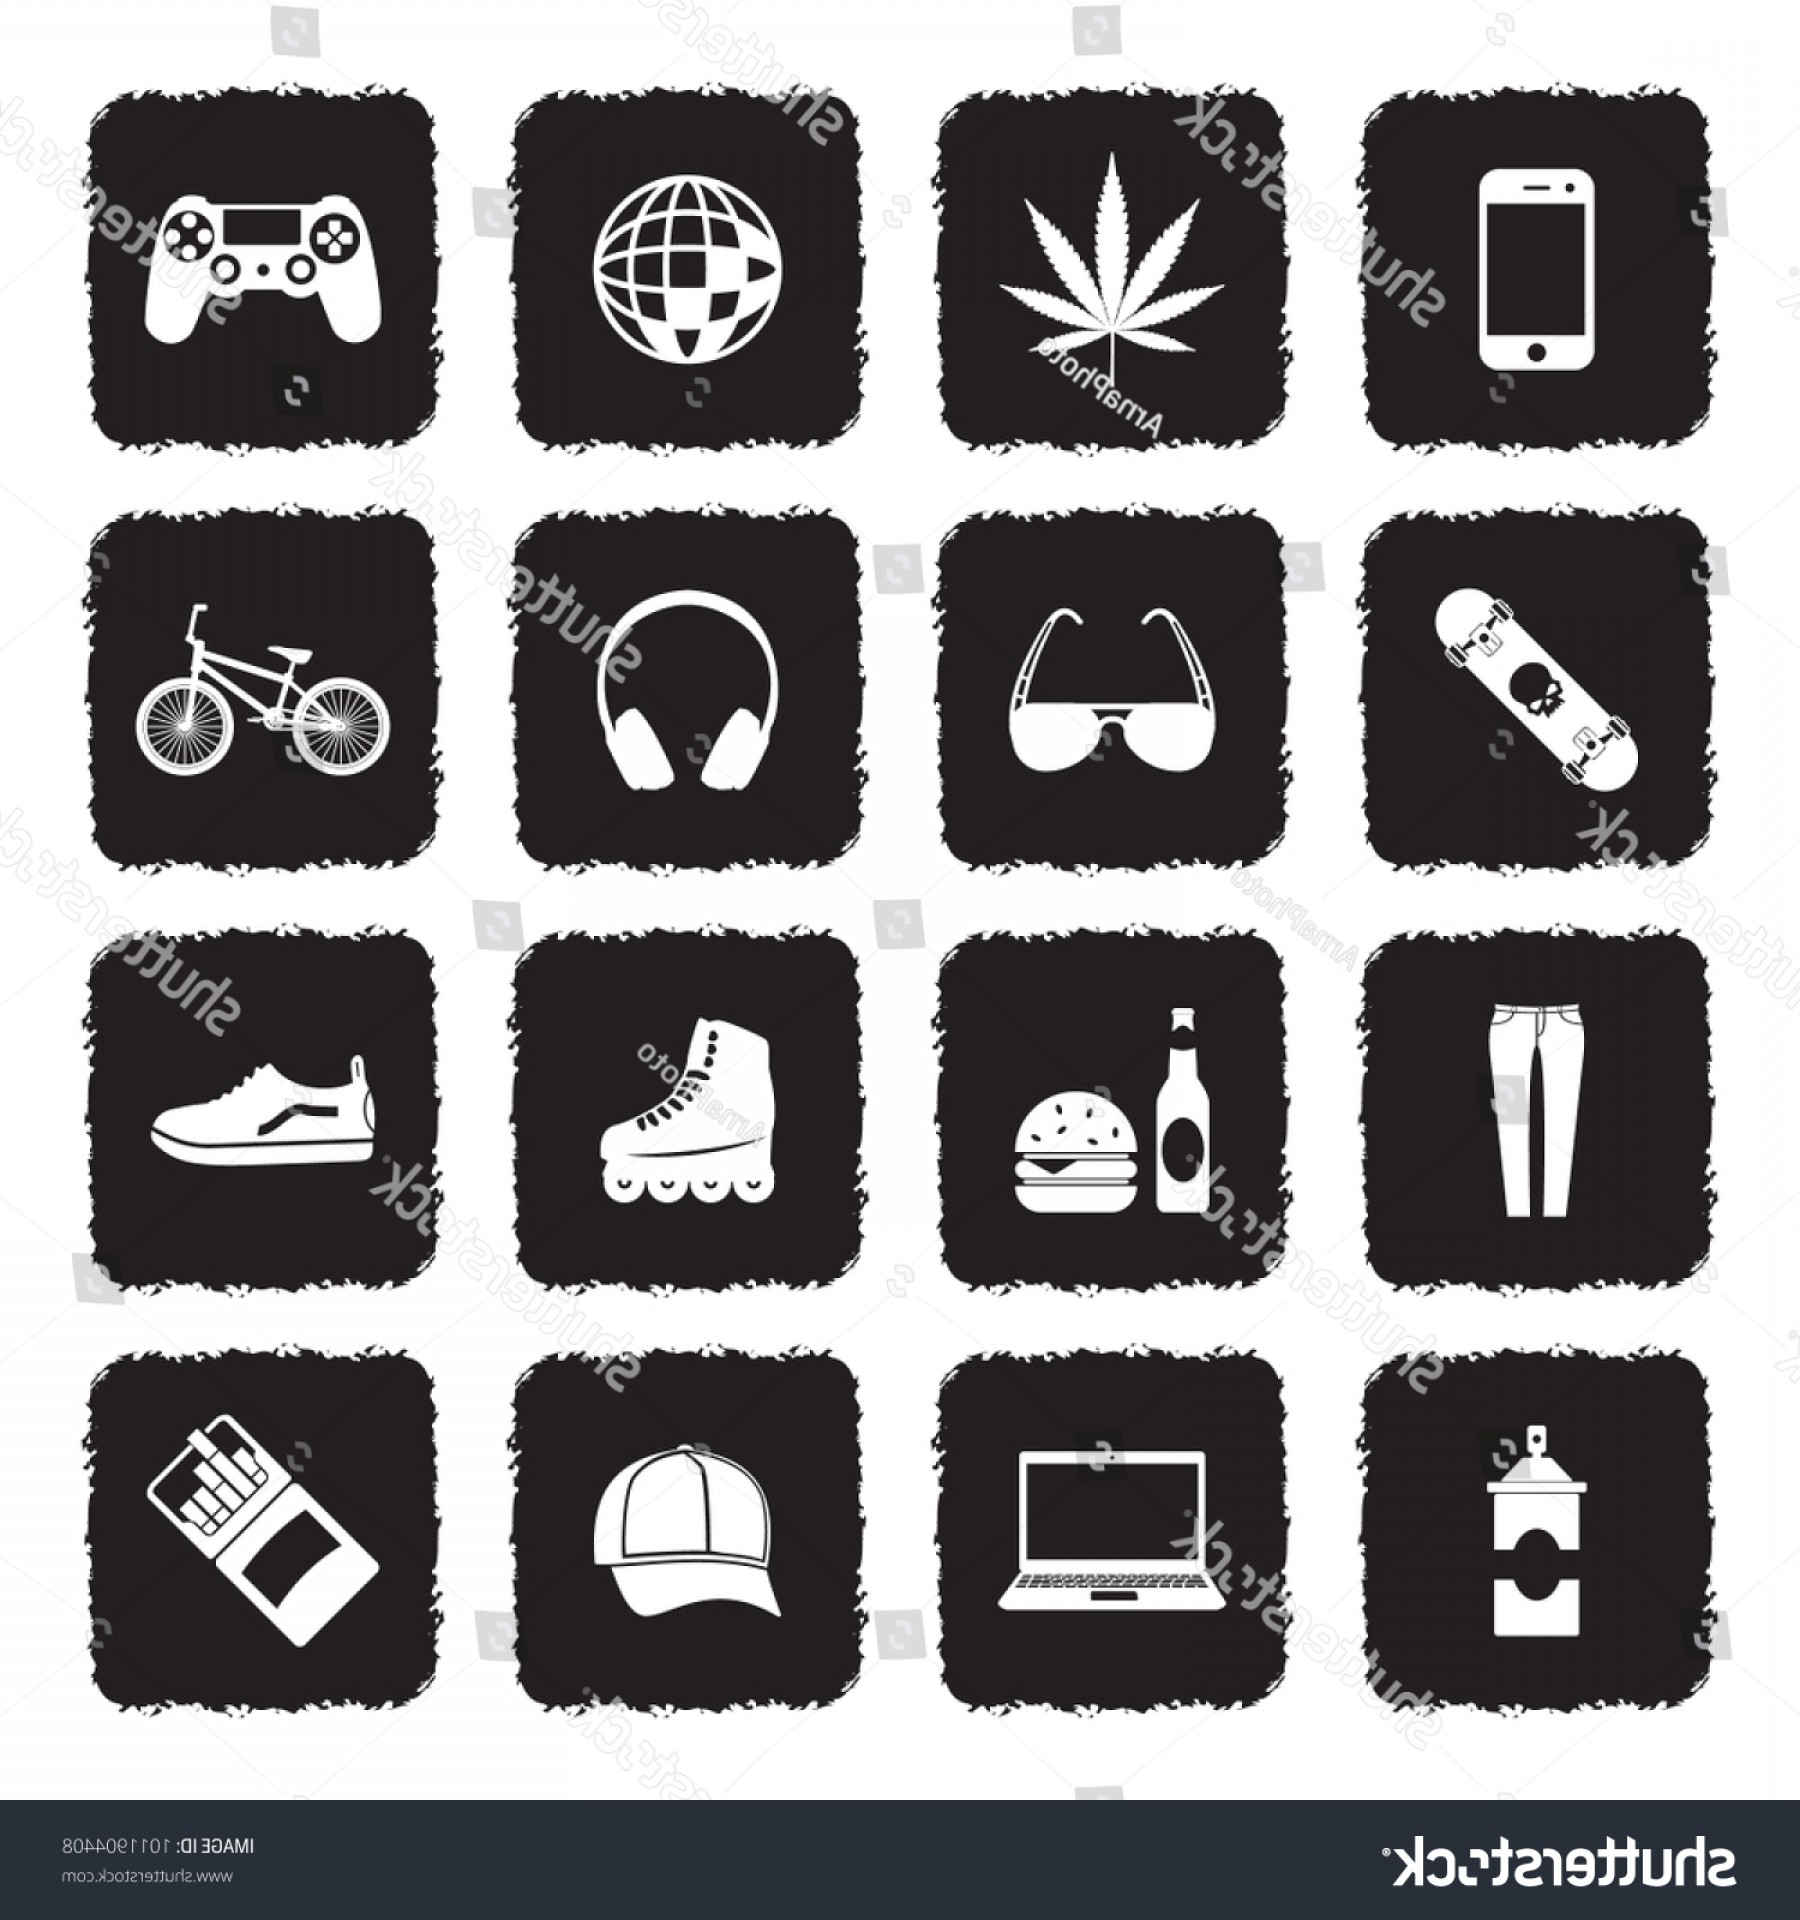 Teenage Icons Vector: Teenager Icons Grunge Black Flat Design